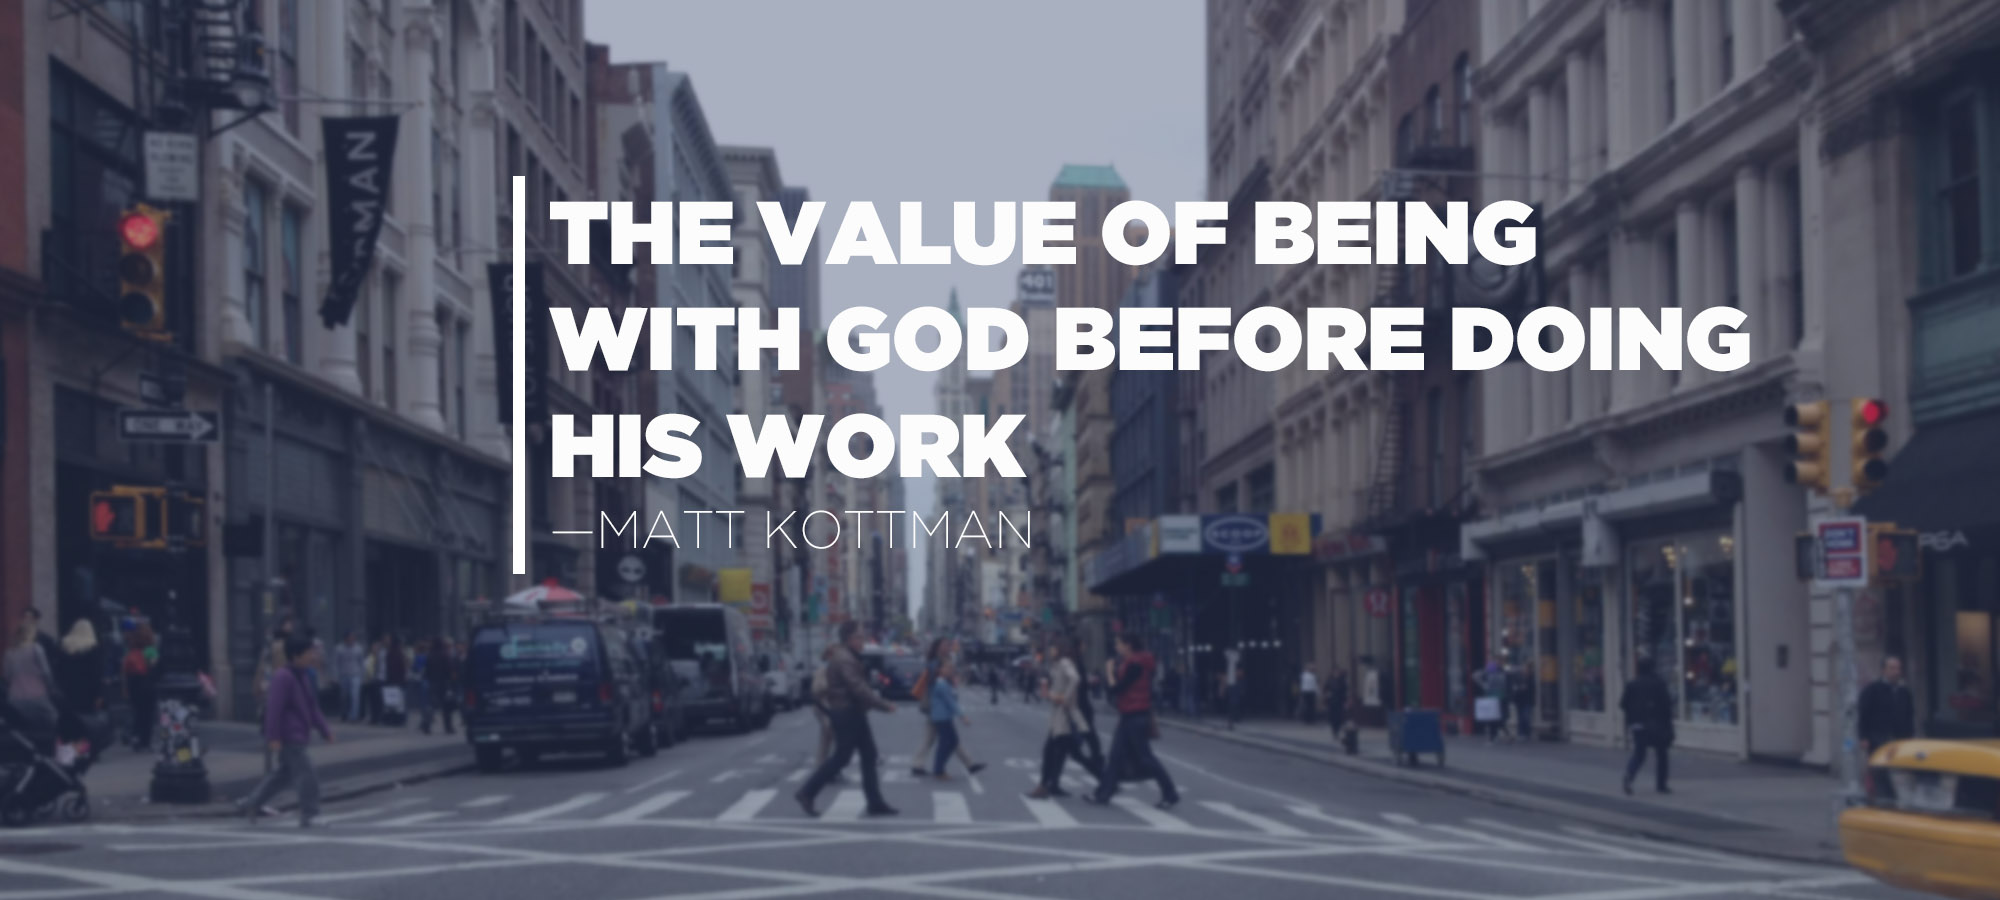 The Value of Being with God Before Doing His Work